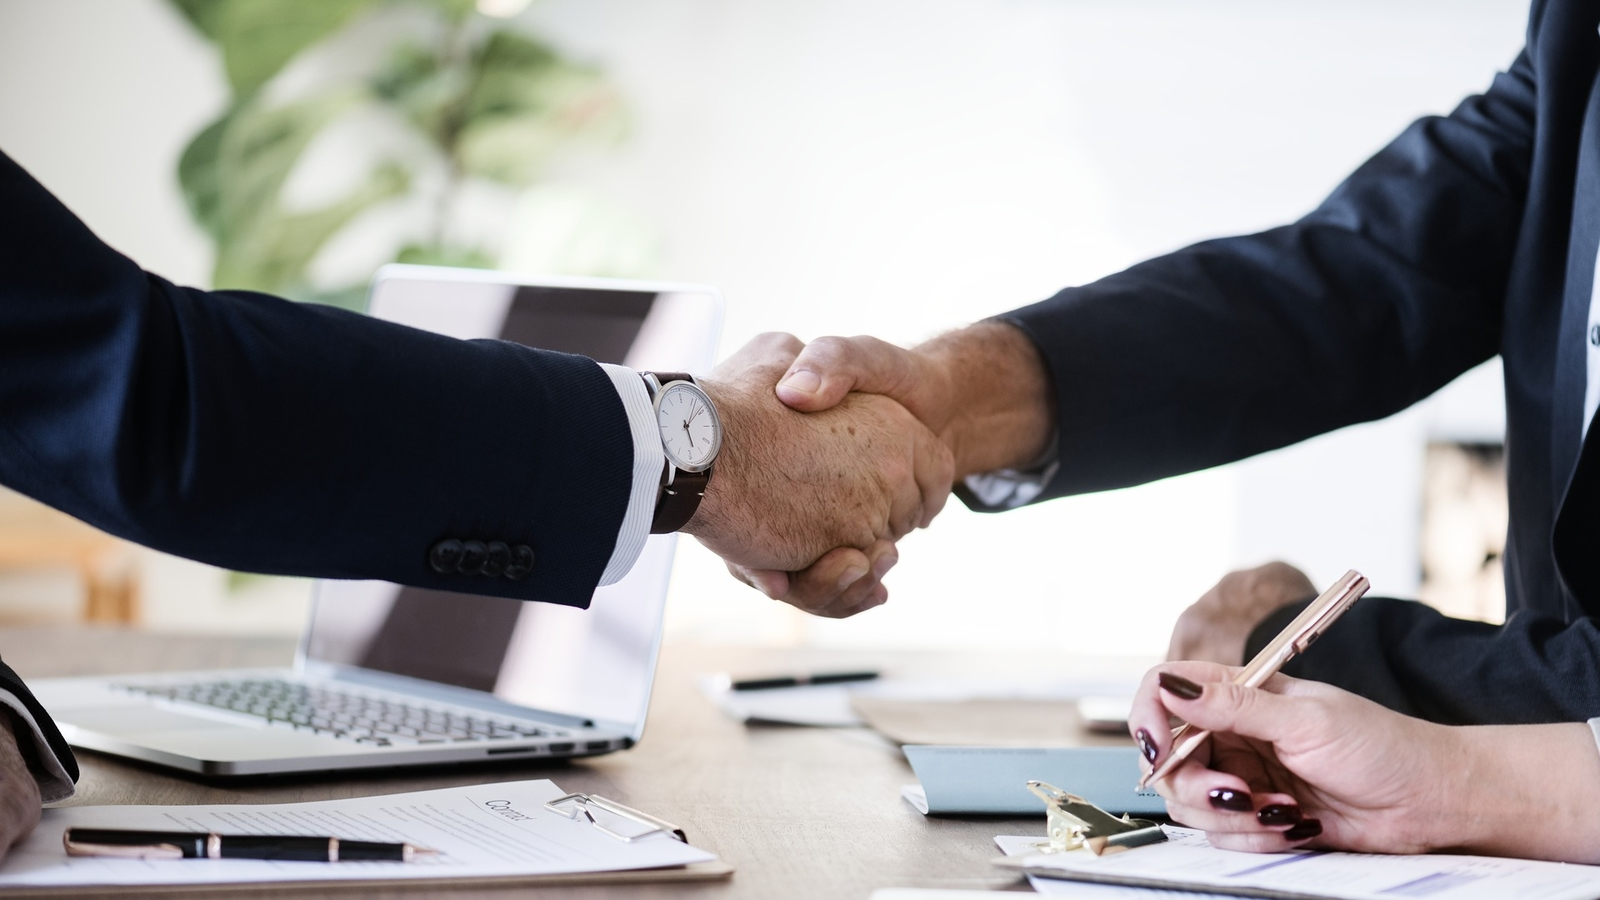 Two people engaged in a business deal shake hands across a table